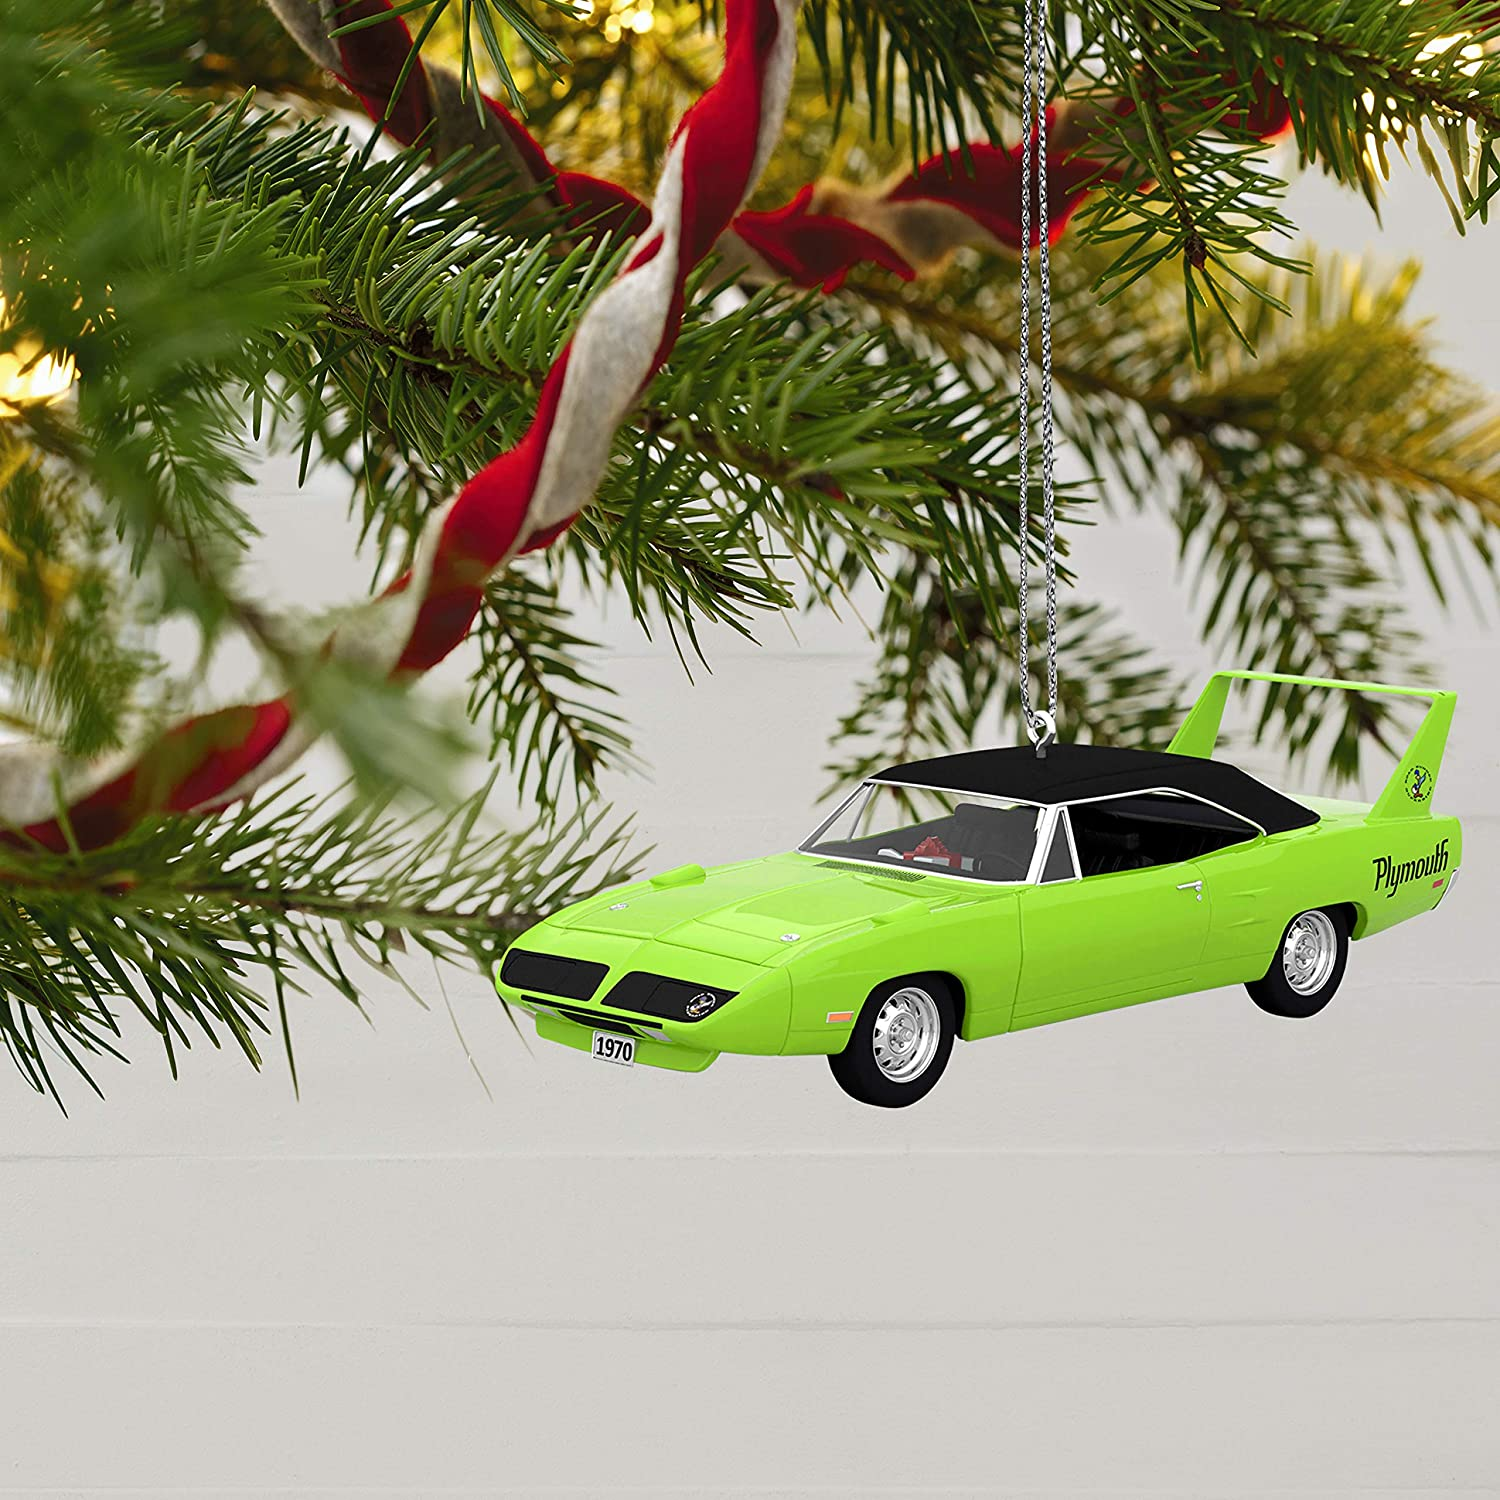 1970 Plymouth Superbird 30th in The Classic American Cars Series